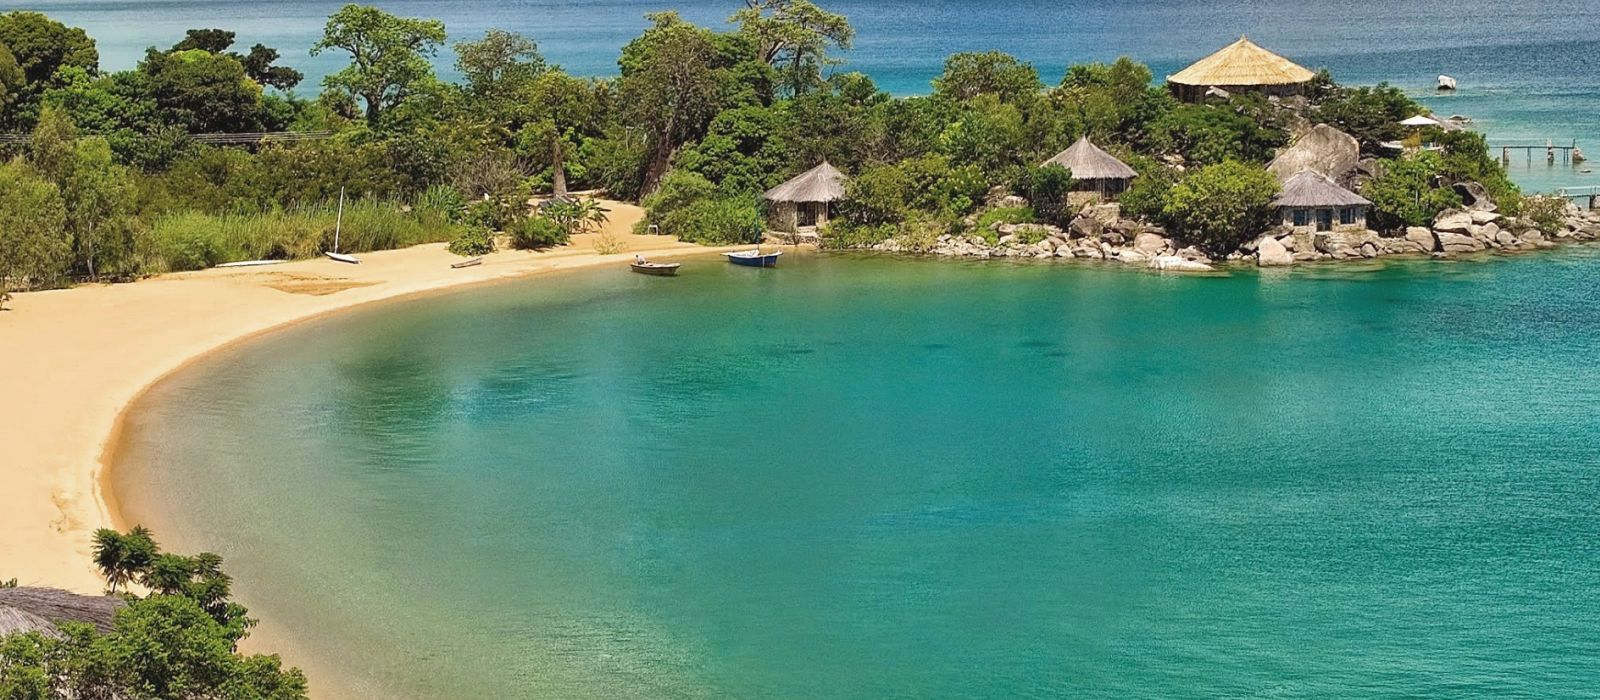 Best time to Visit Malawi